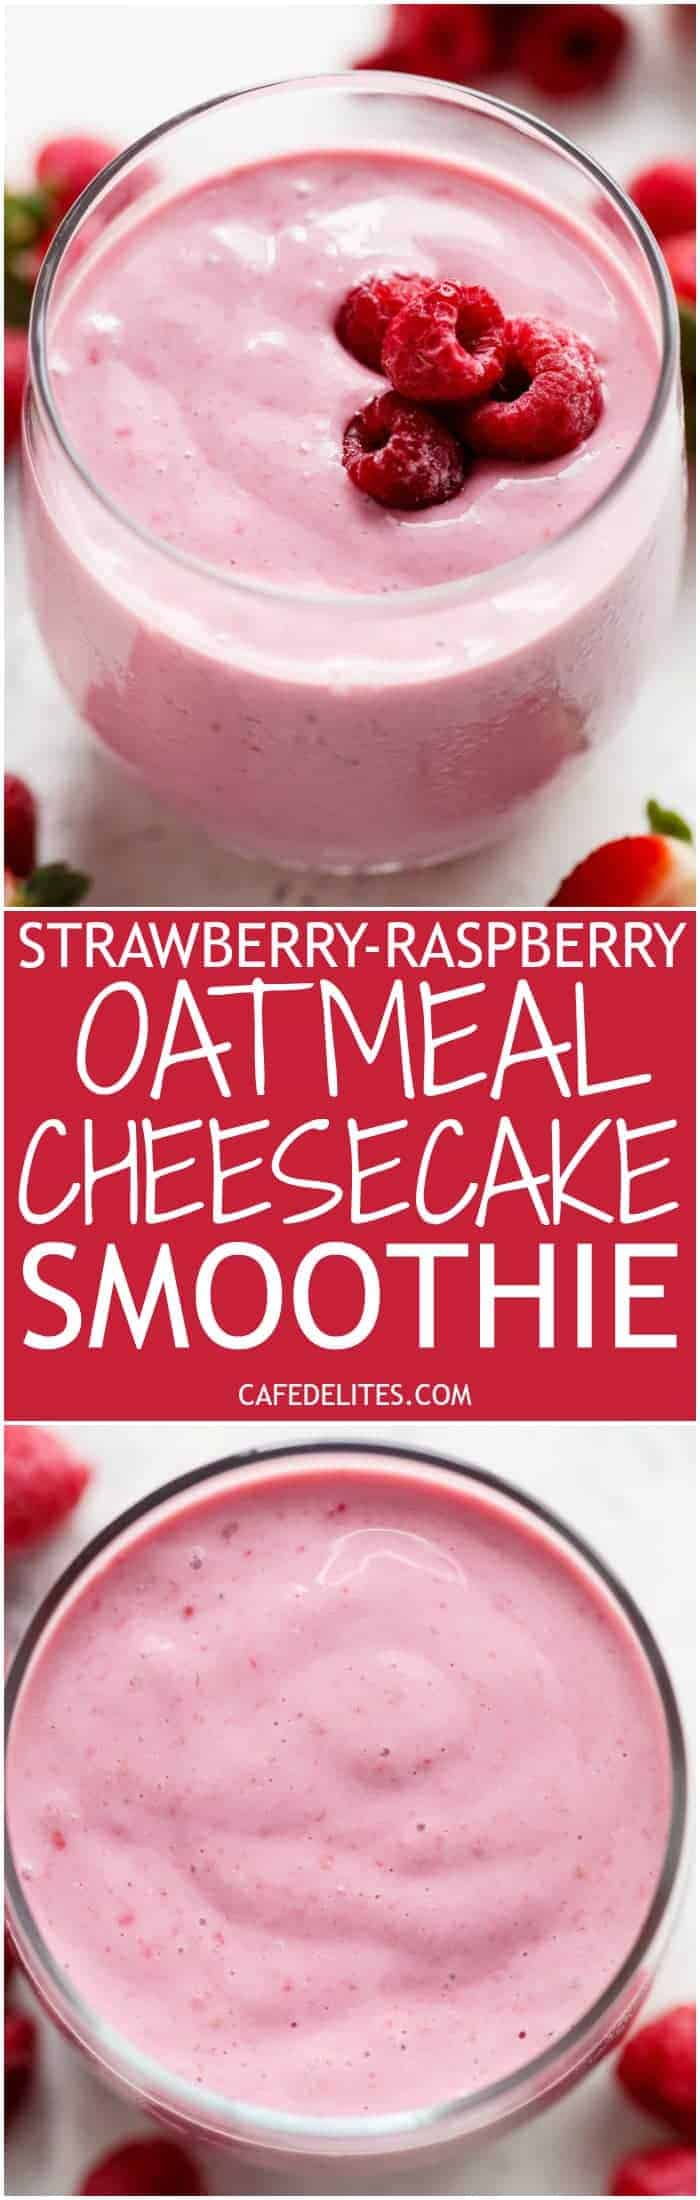 A thick, super creamy and filling Strawberry-Raspberry Oatmeal Cheesecake Smoothie that tastes exactly like a cheesecake....in a glass....for breakfast! | http://cafedelites.com